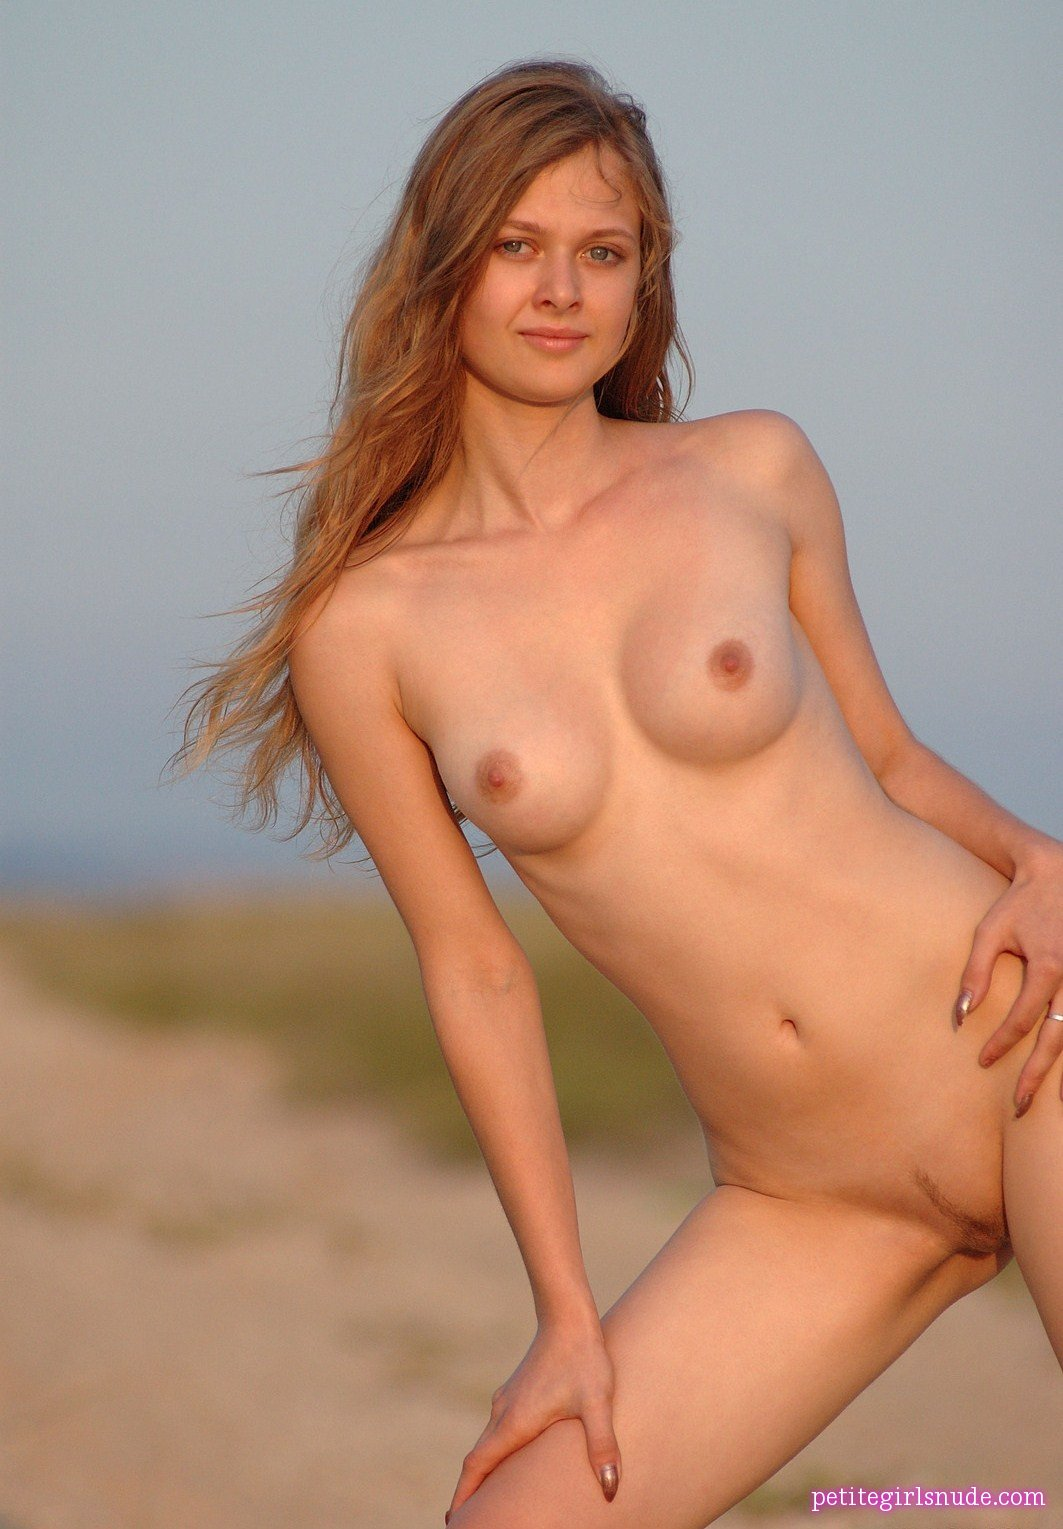 Pretty Juli Nude Pics And Biography - Petite Girls Nude-3154